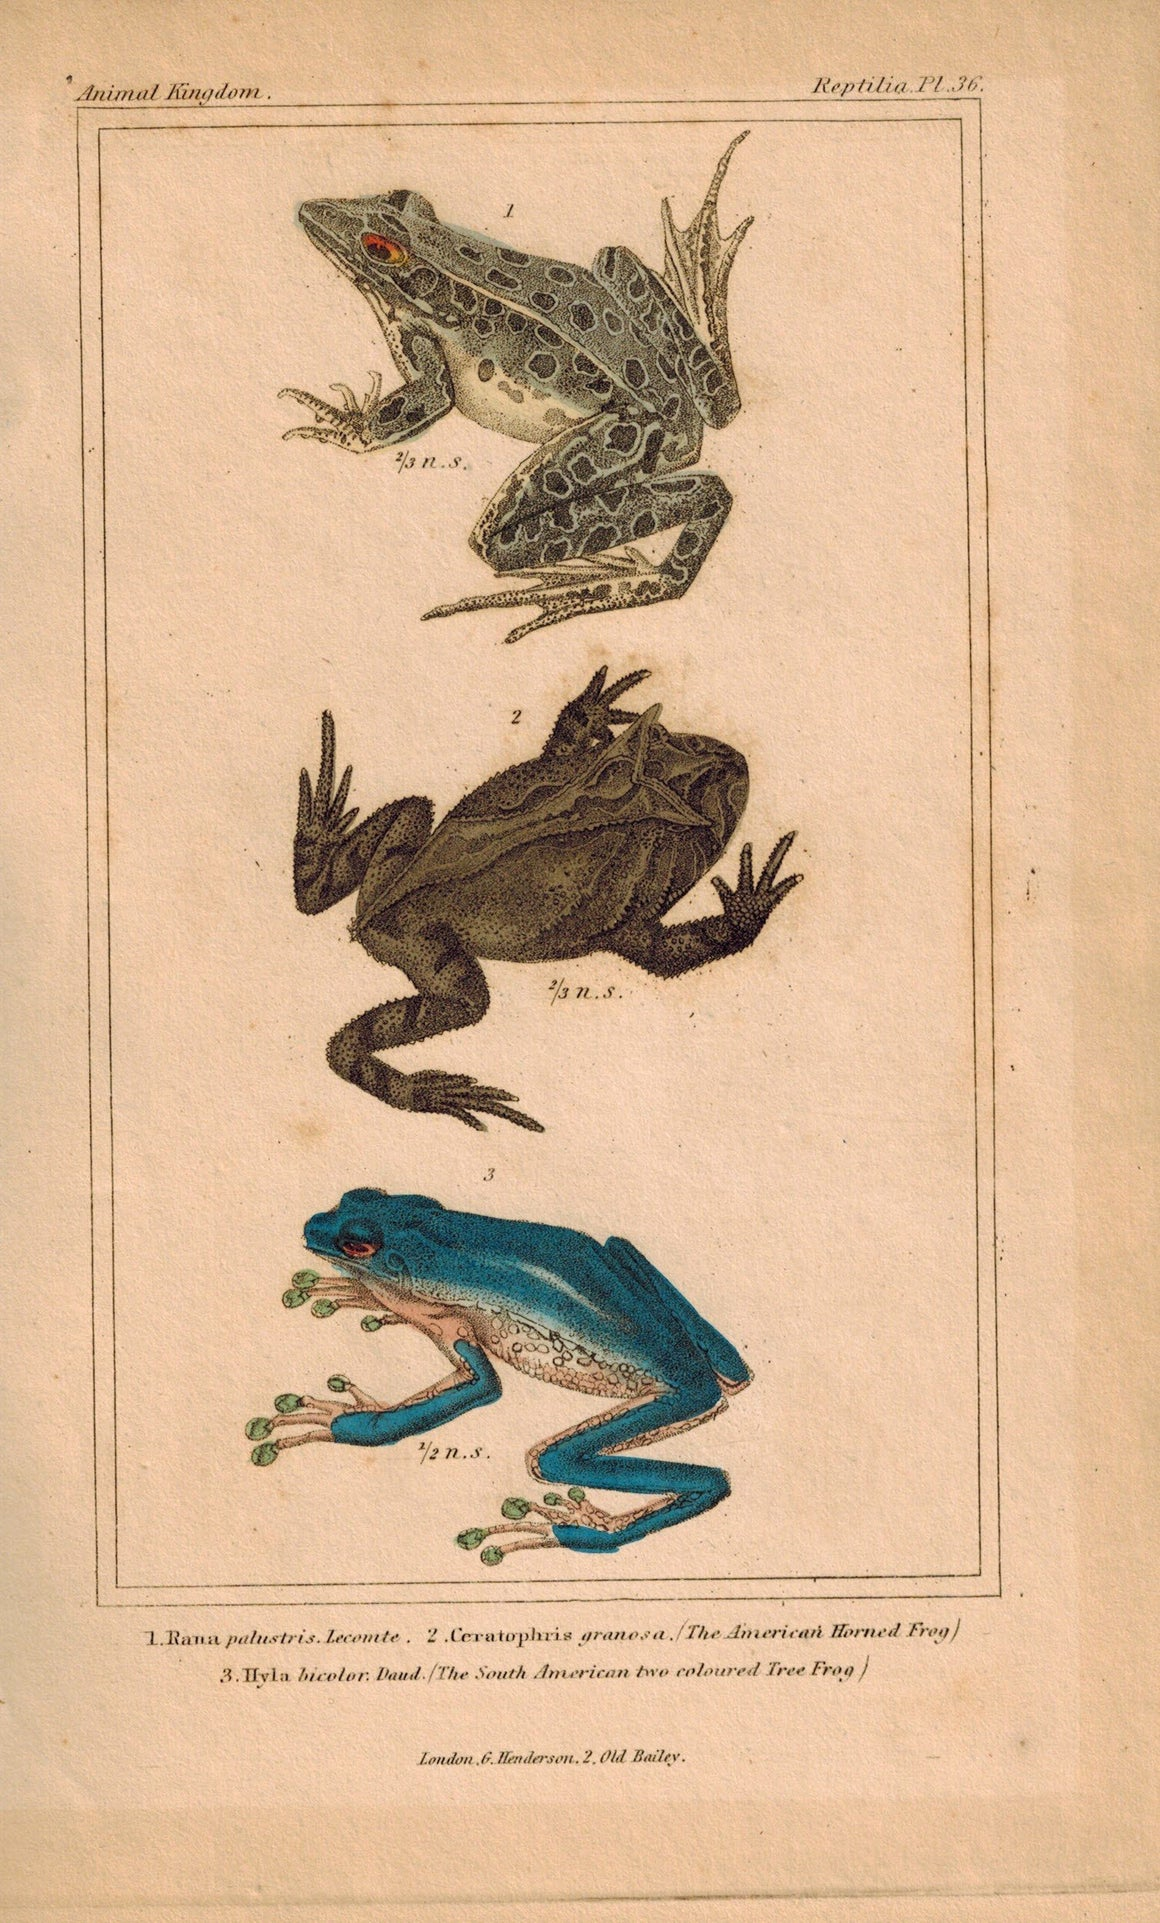 American Horned Frog and South American Tree Frog 1834 Engraved Cuvier Print 36